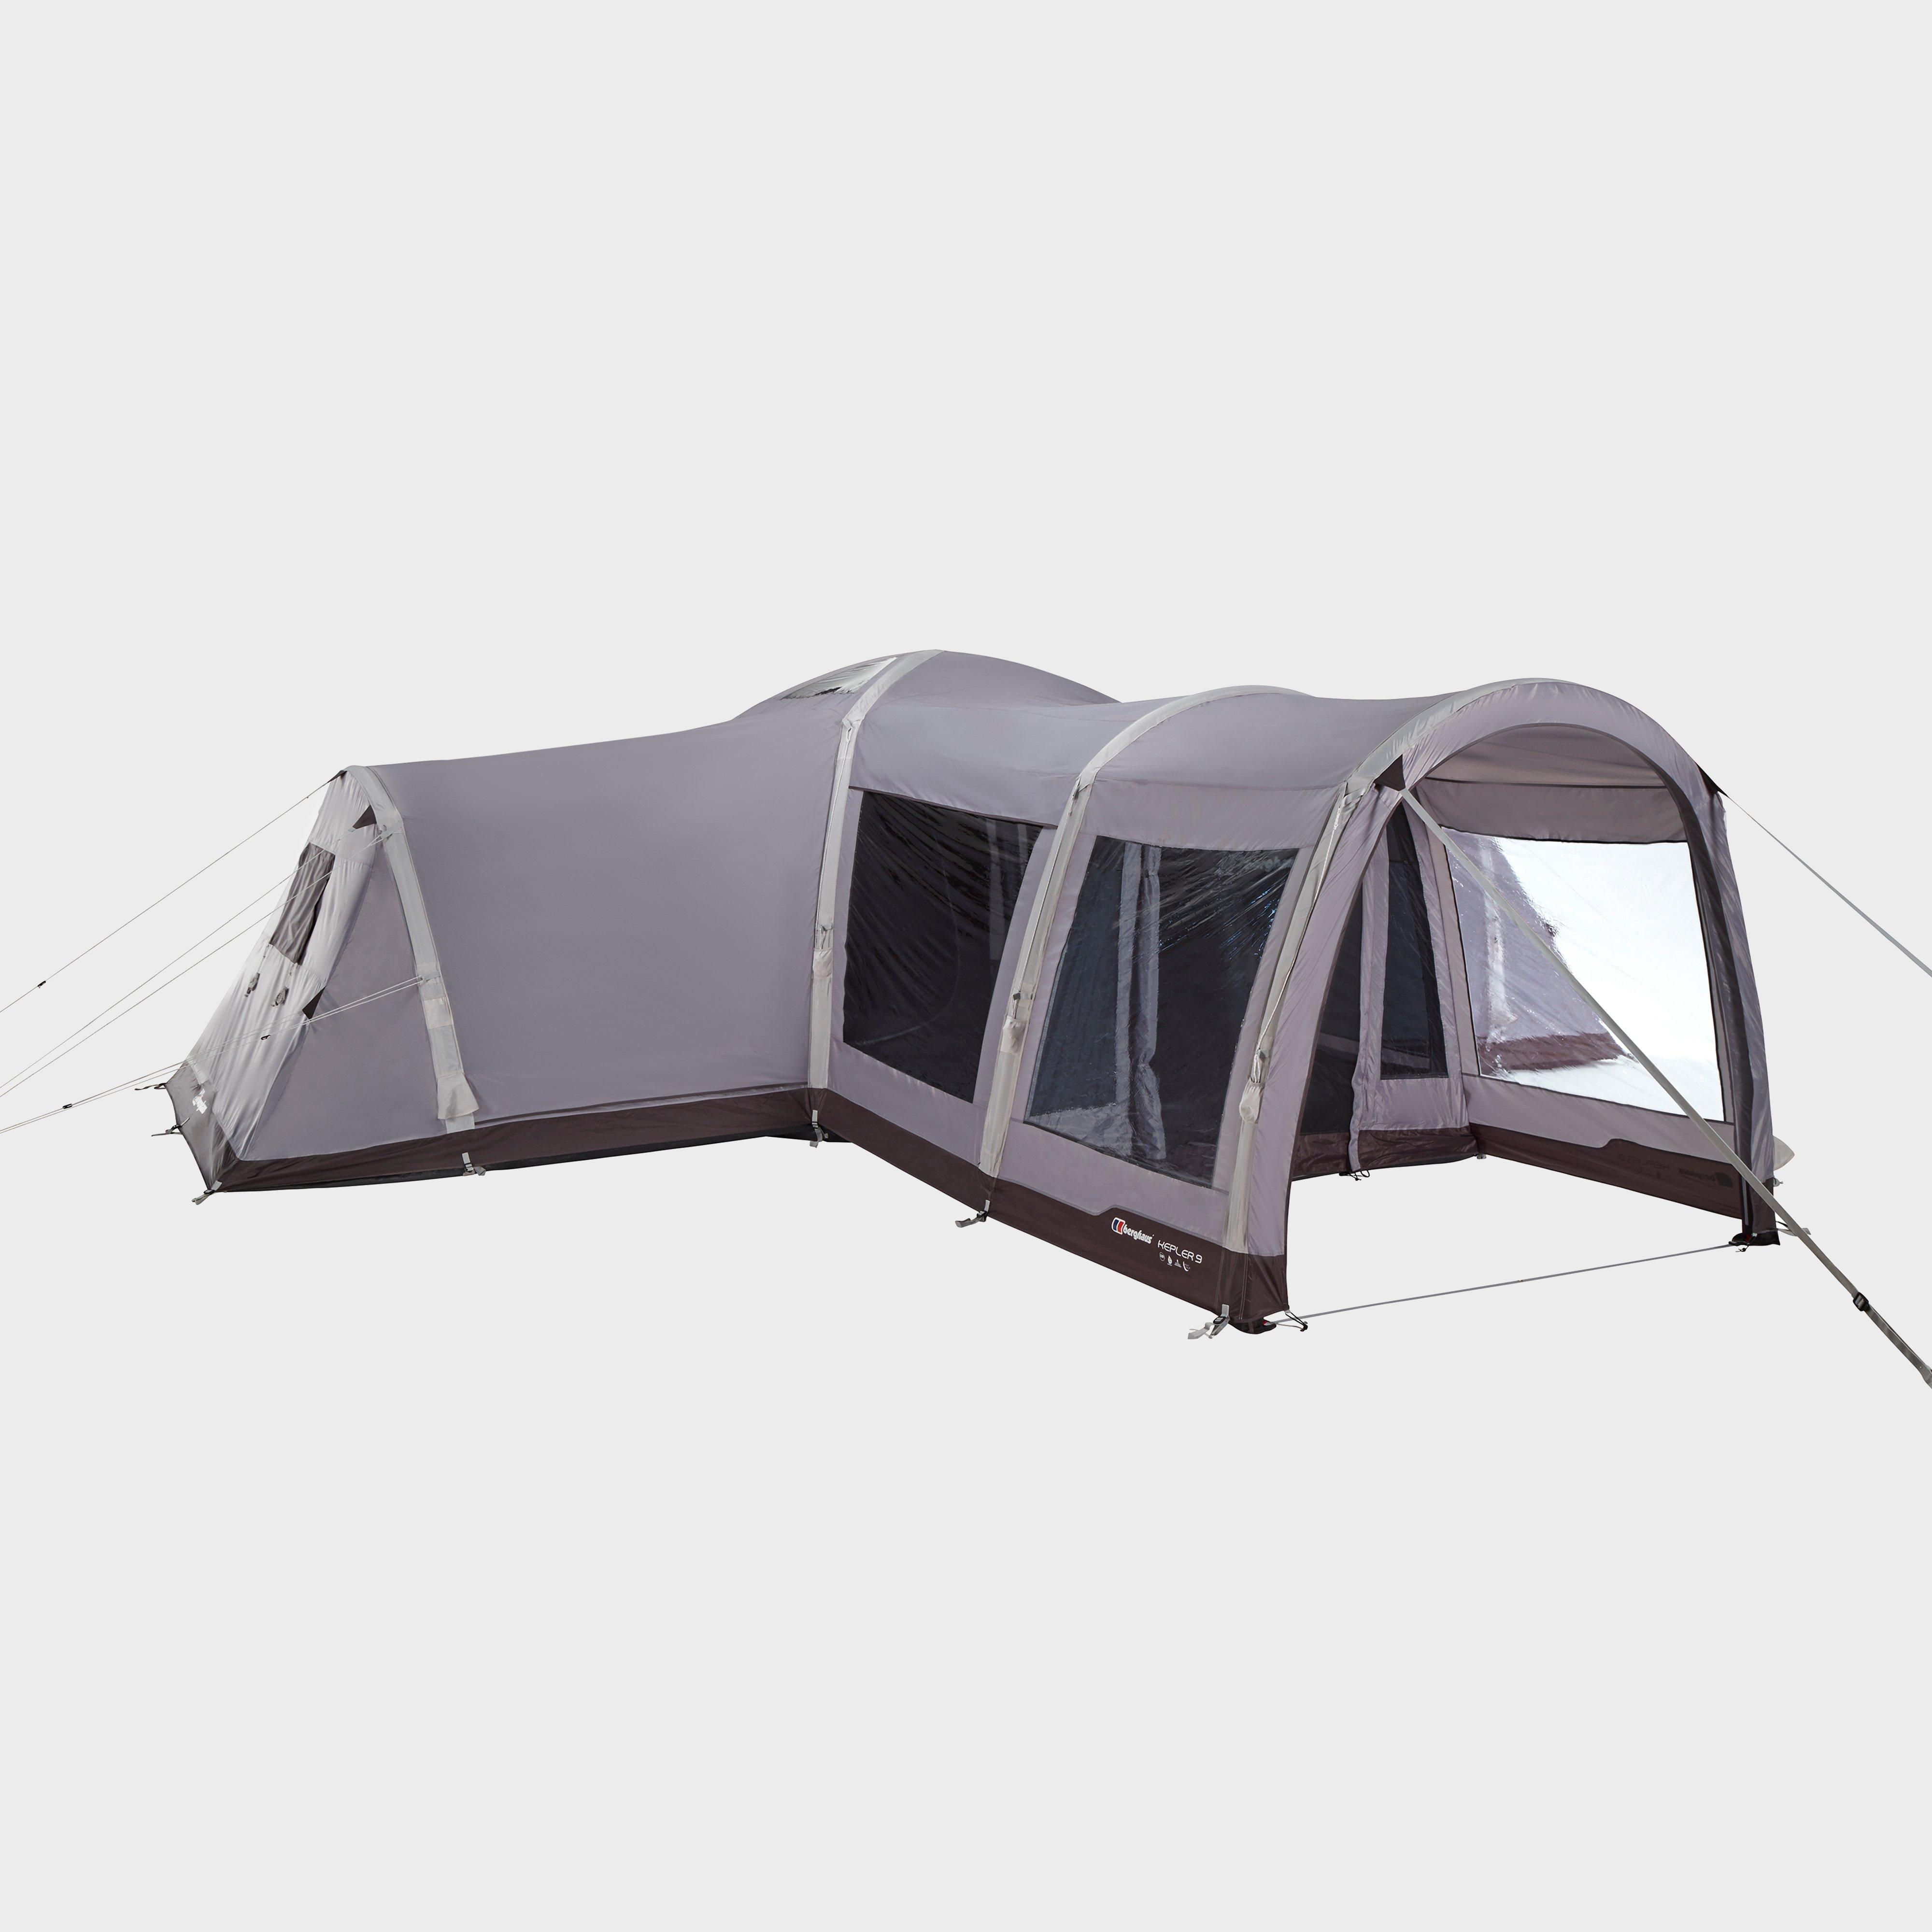 Berghaus Kepler 9 Nightfall Air Tent, Grey/LGY